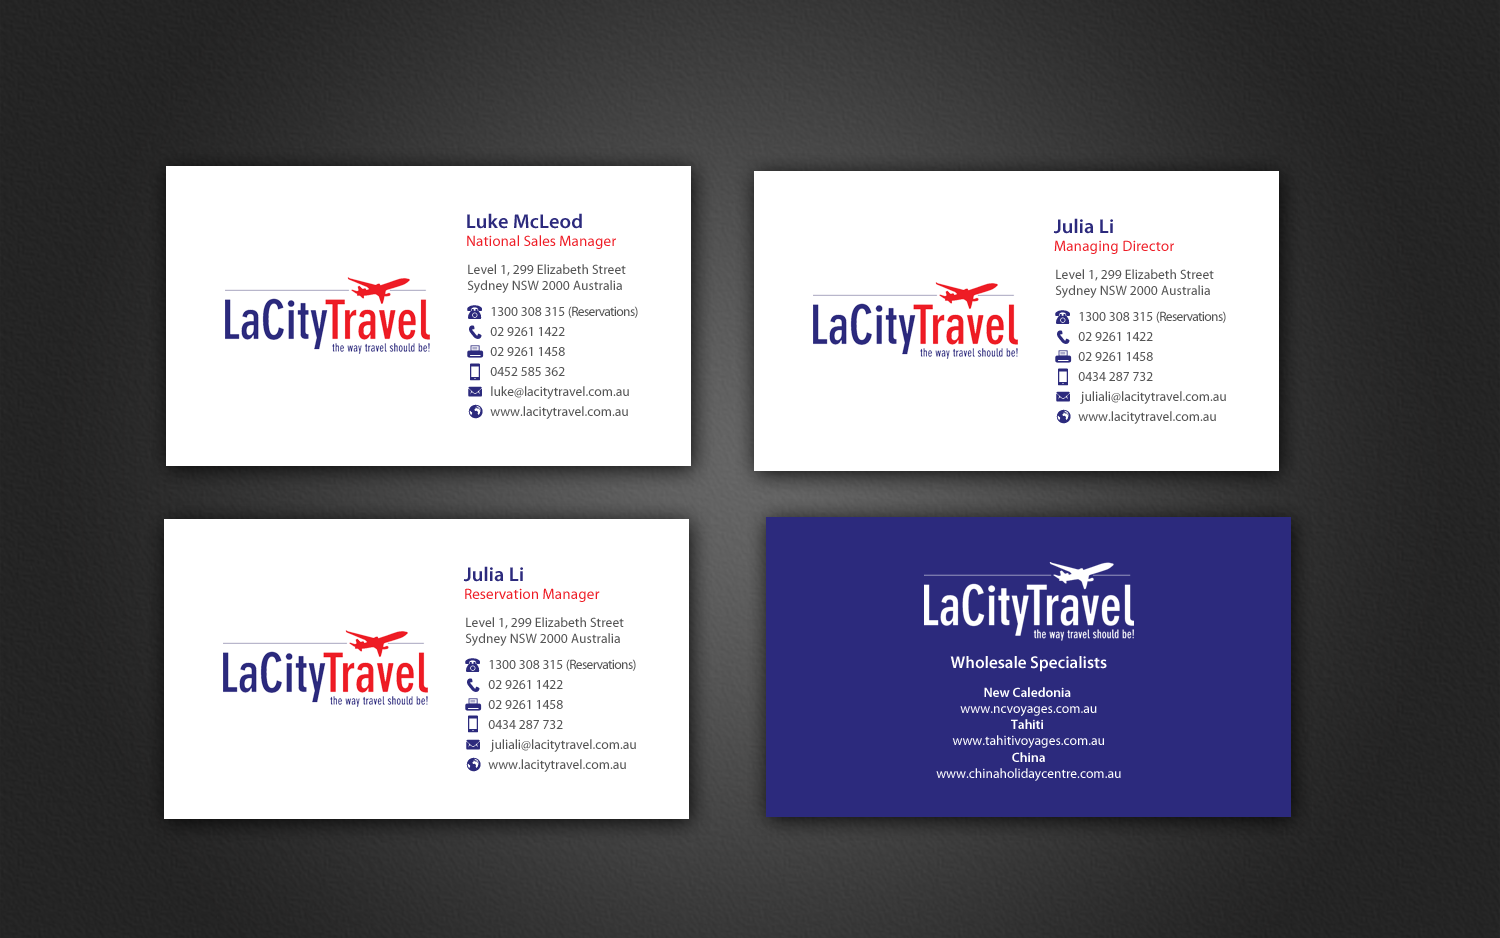 Modern professional travel agent business card design for lacity business card design by chandrayaaneative for lacity travel australia design 9264852 colourmoves